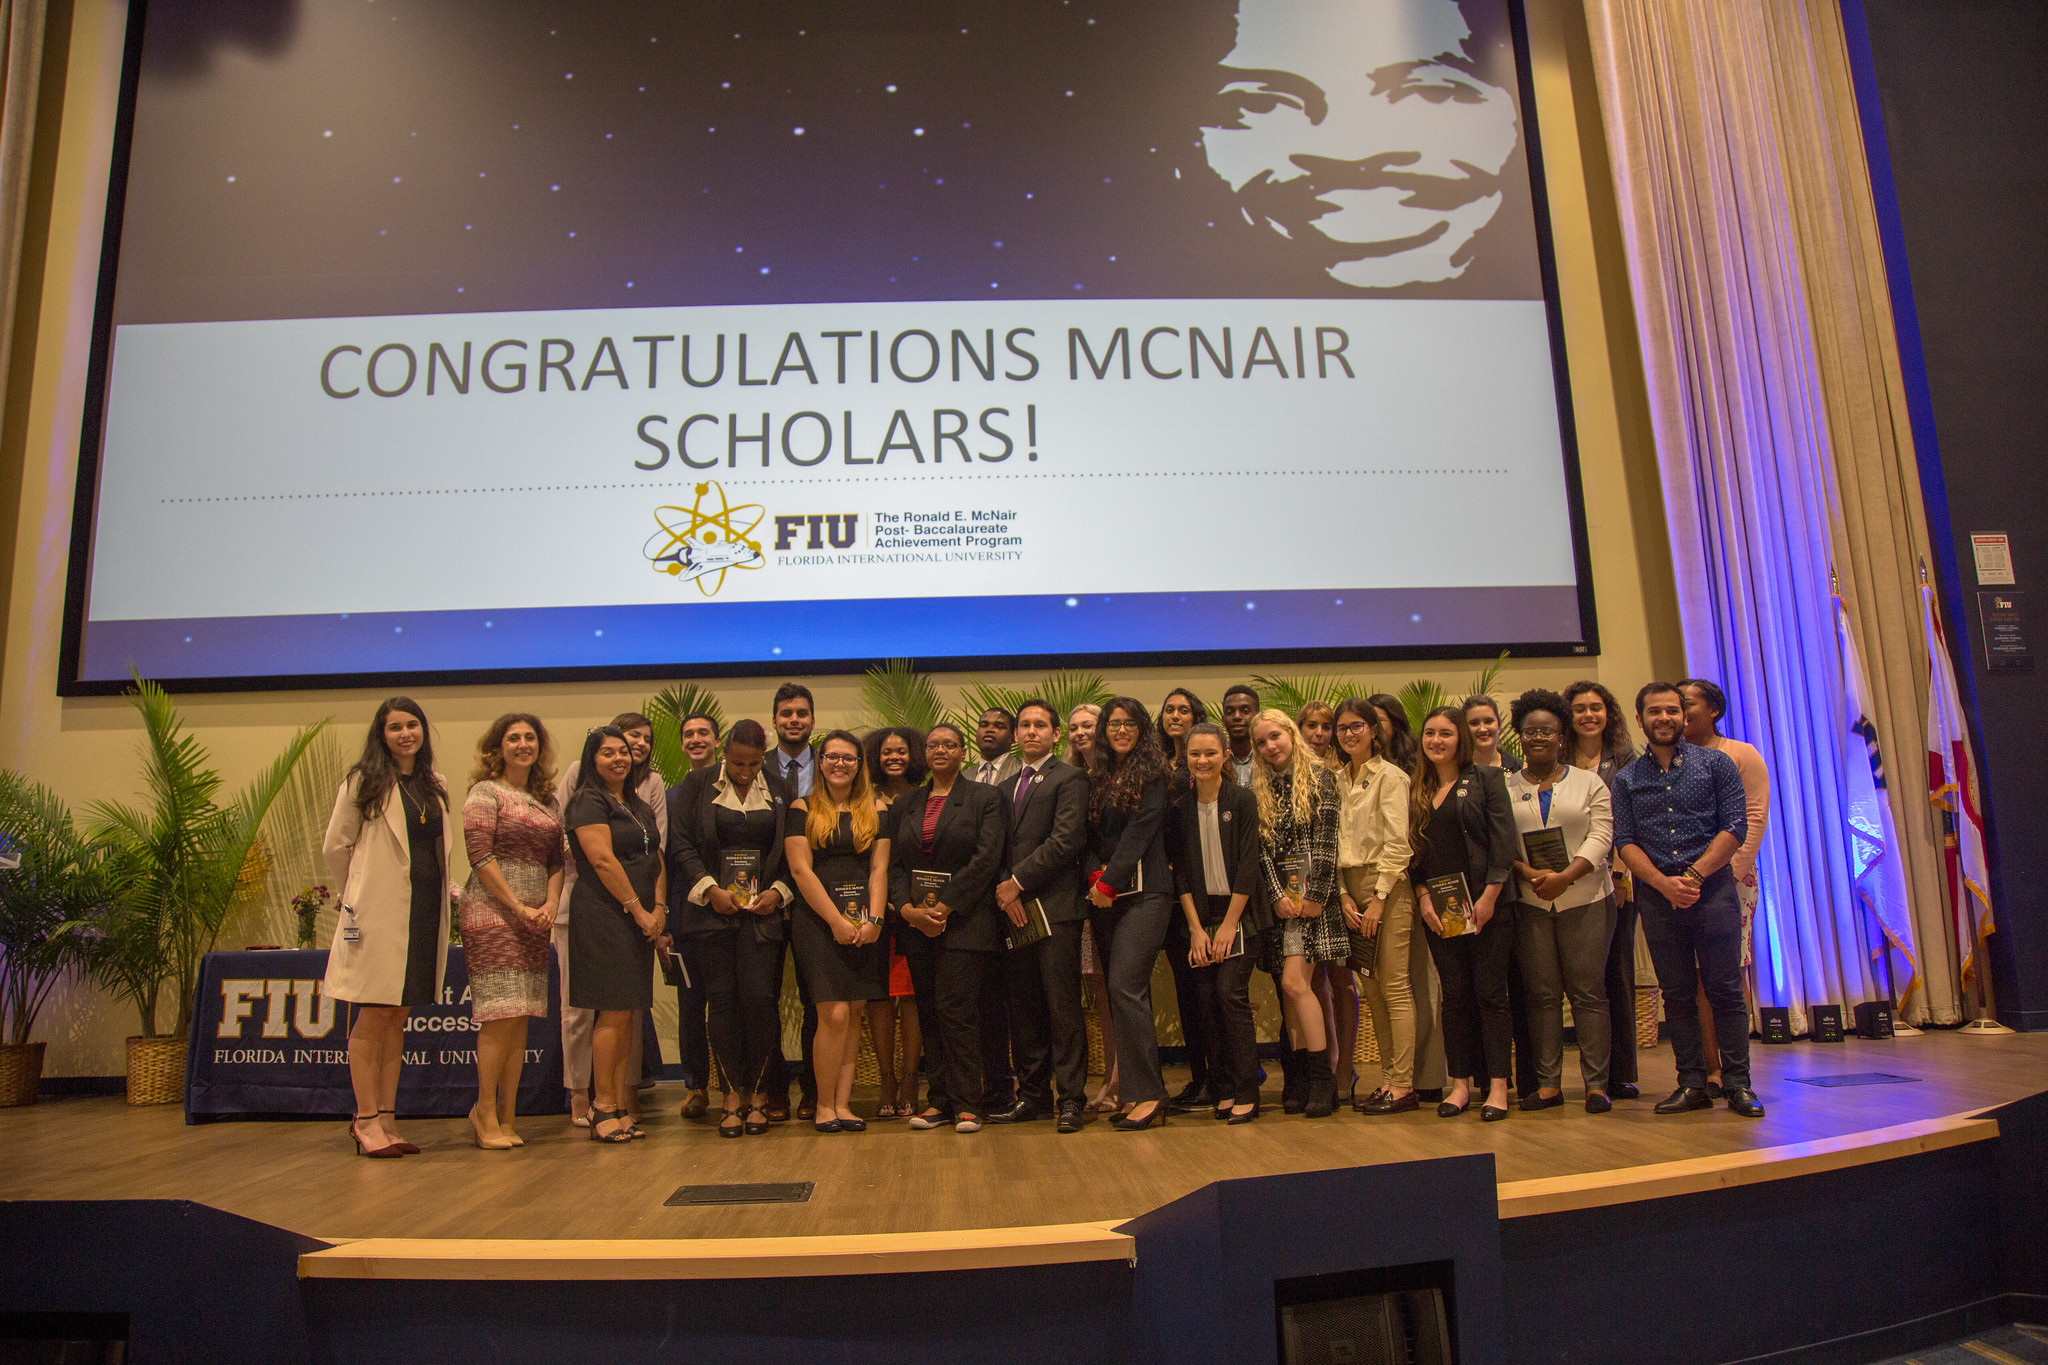 FIU celebrates 16 years of McNair Scholars, welcomes new inductees